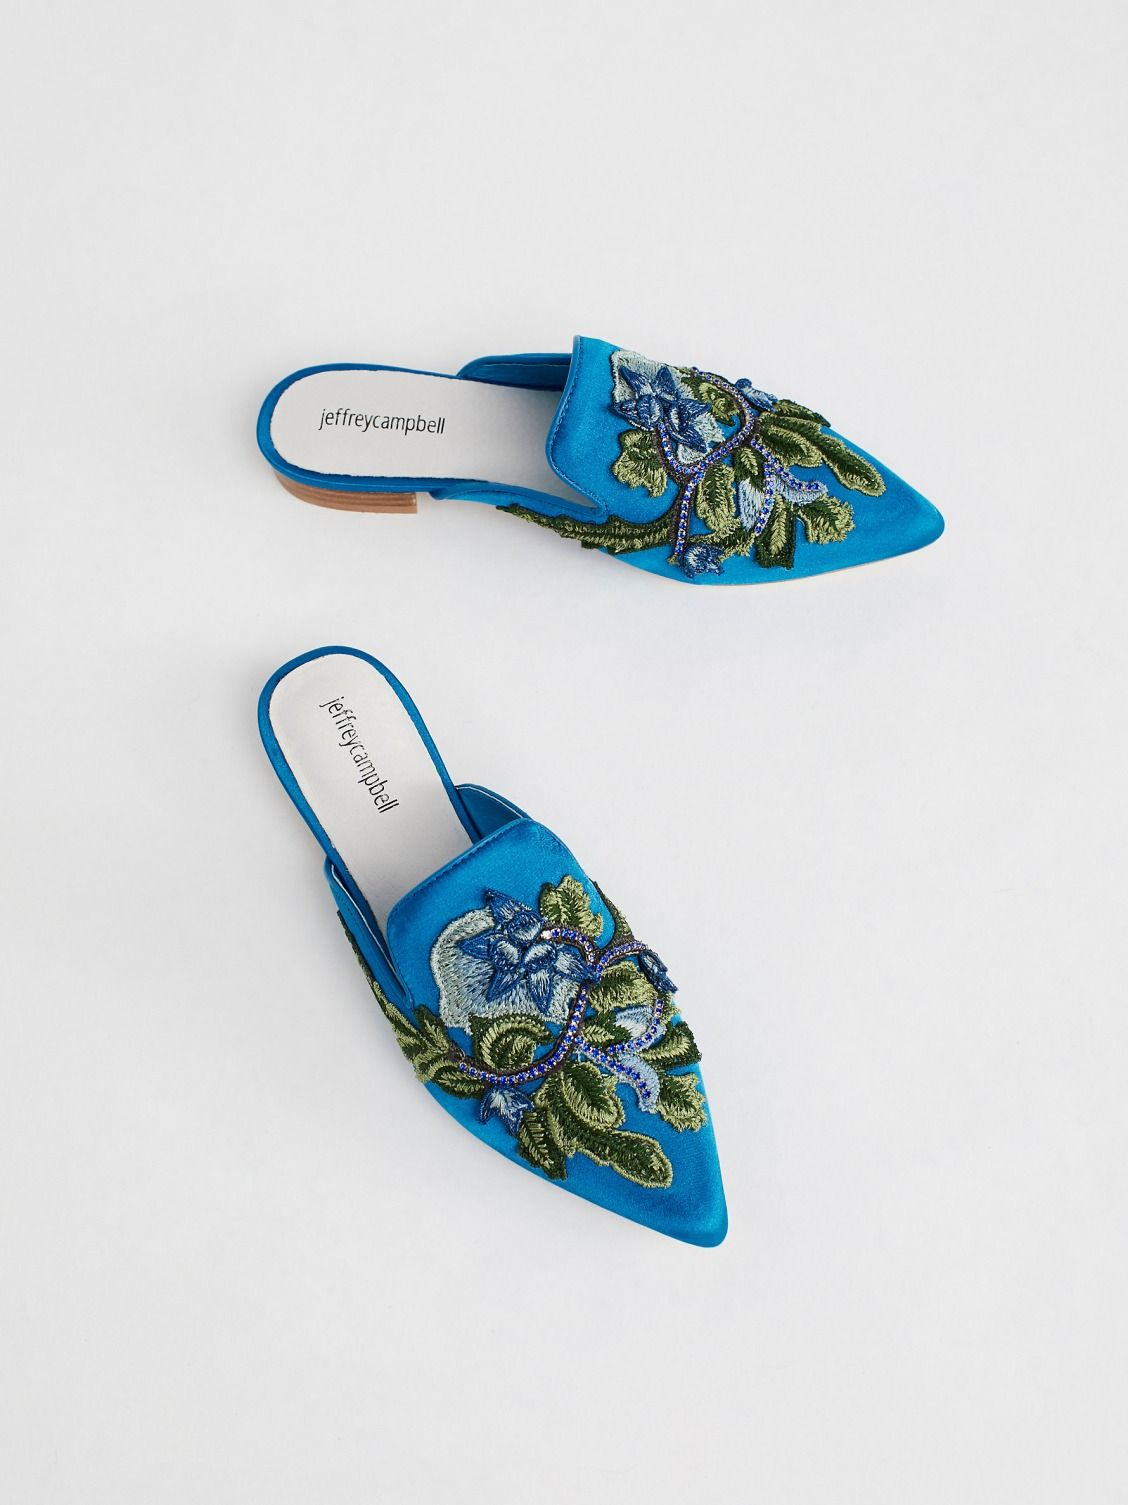 44a92ed13f8e Jeffrey Campbell Blue Velvet Combo Valencia Flat at Free People Clothing  Boutique Women s Shoes Sandals